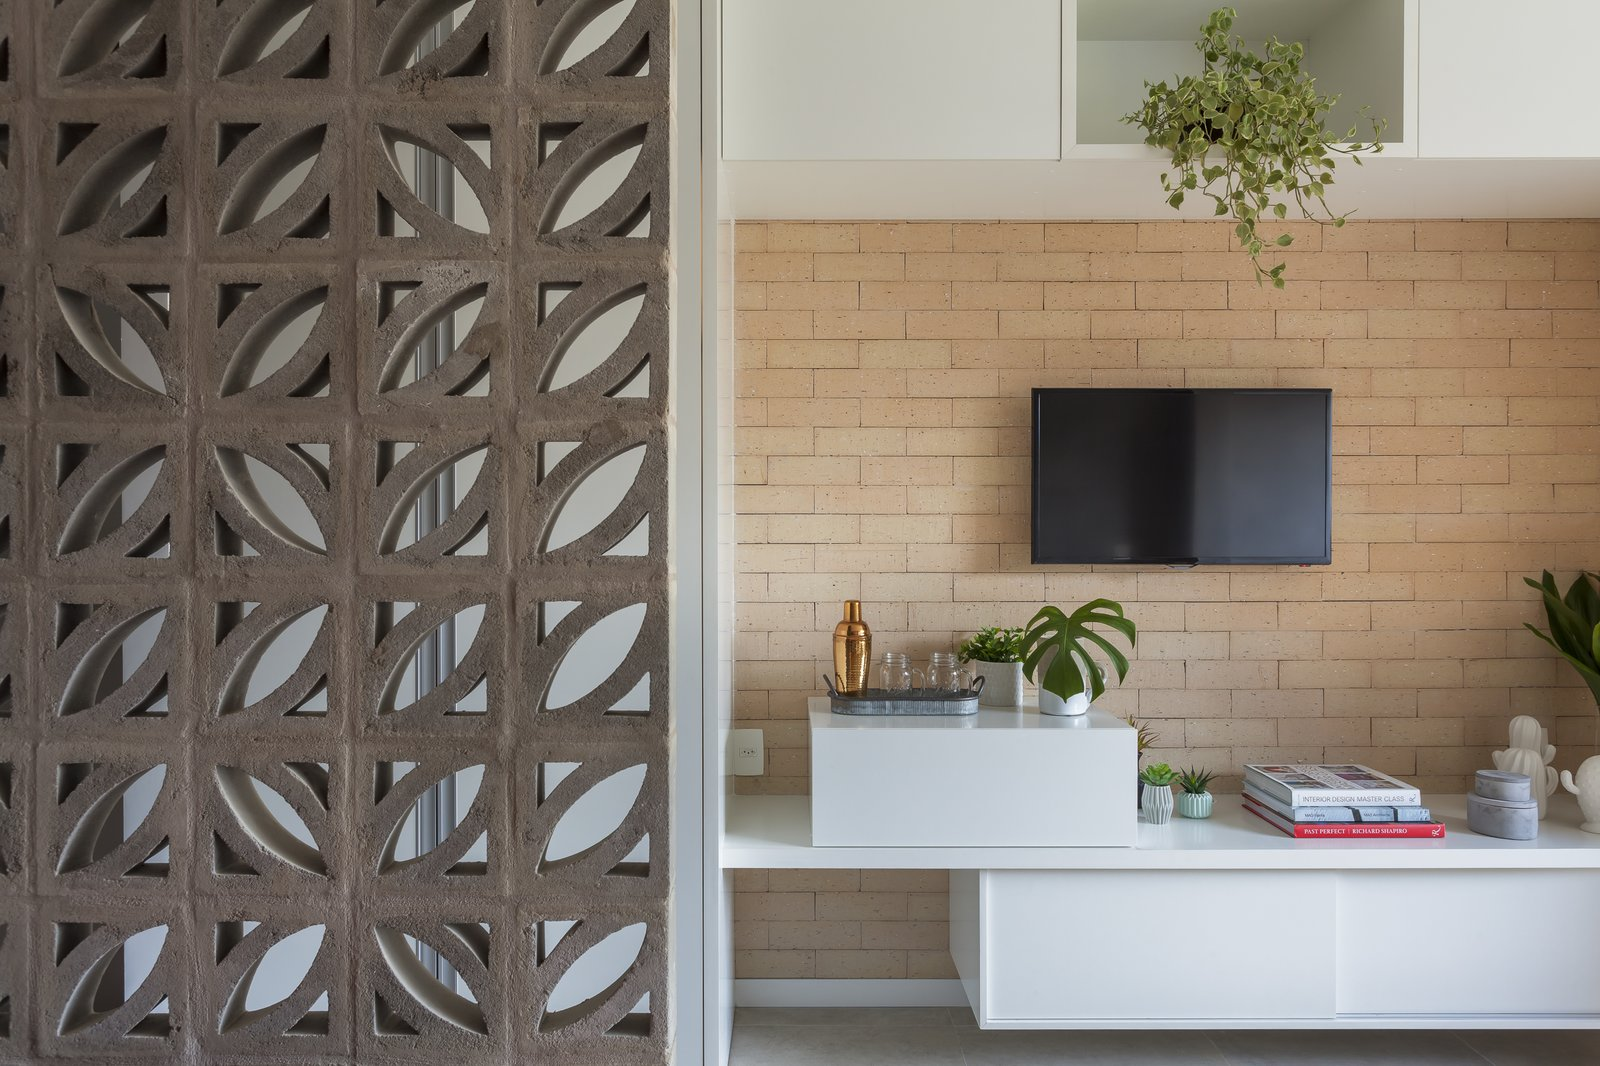 Storage Room and Cabinet Storage Type  Photo 3 of 9 in A 290-Square-Foot Apartment in São Paulo Takes Advantage of Every Inch